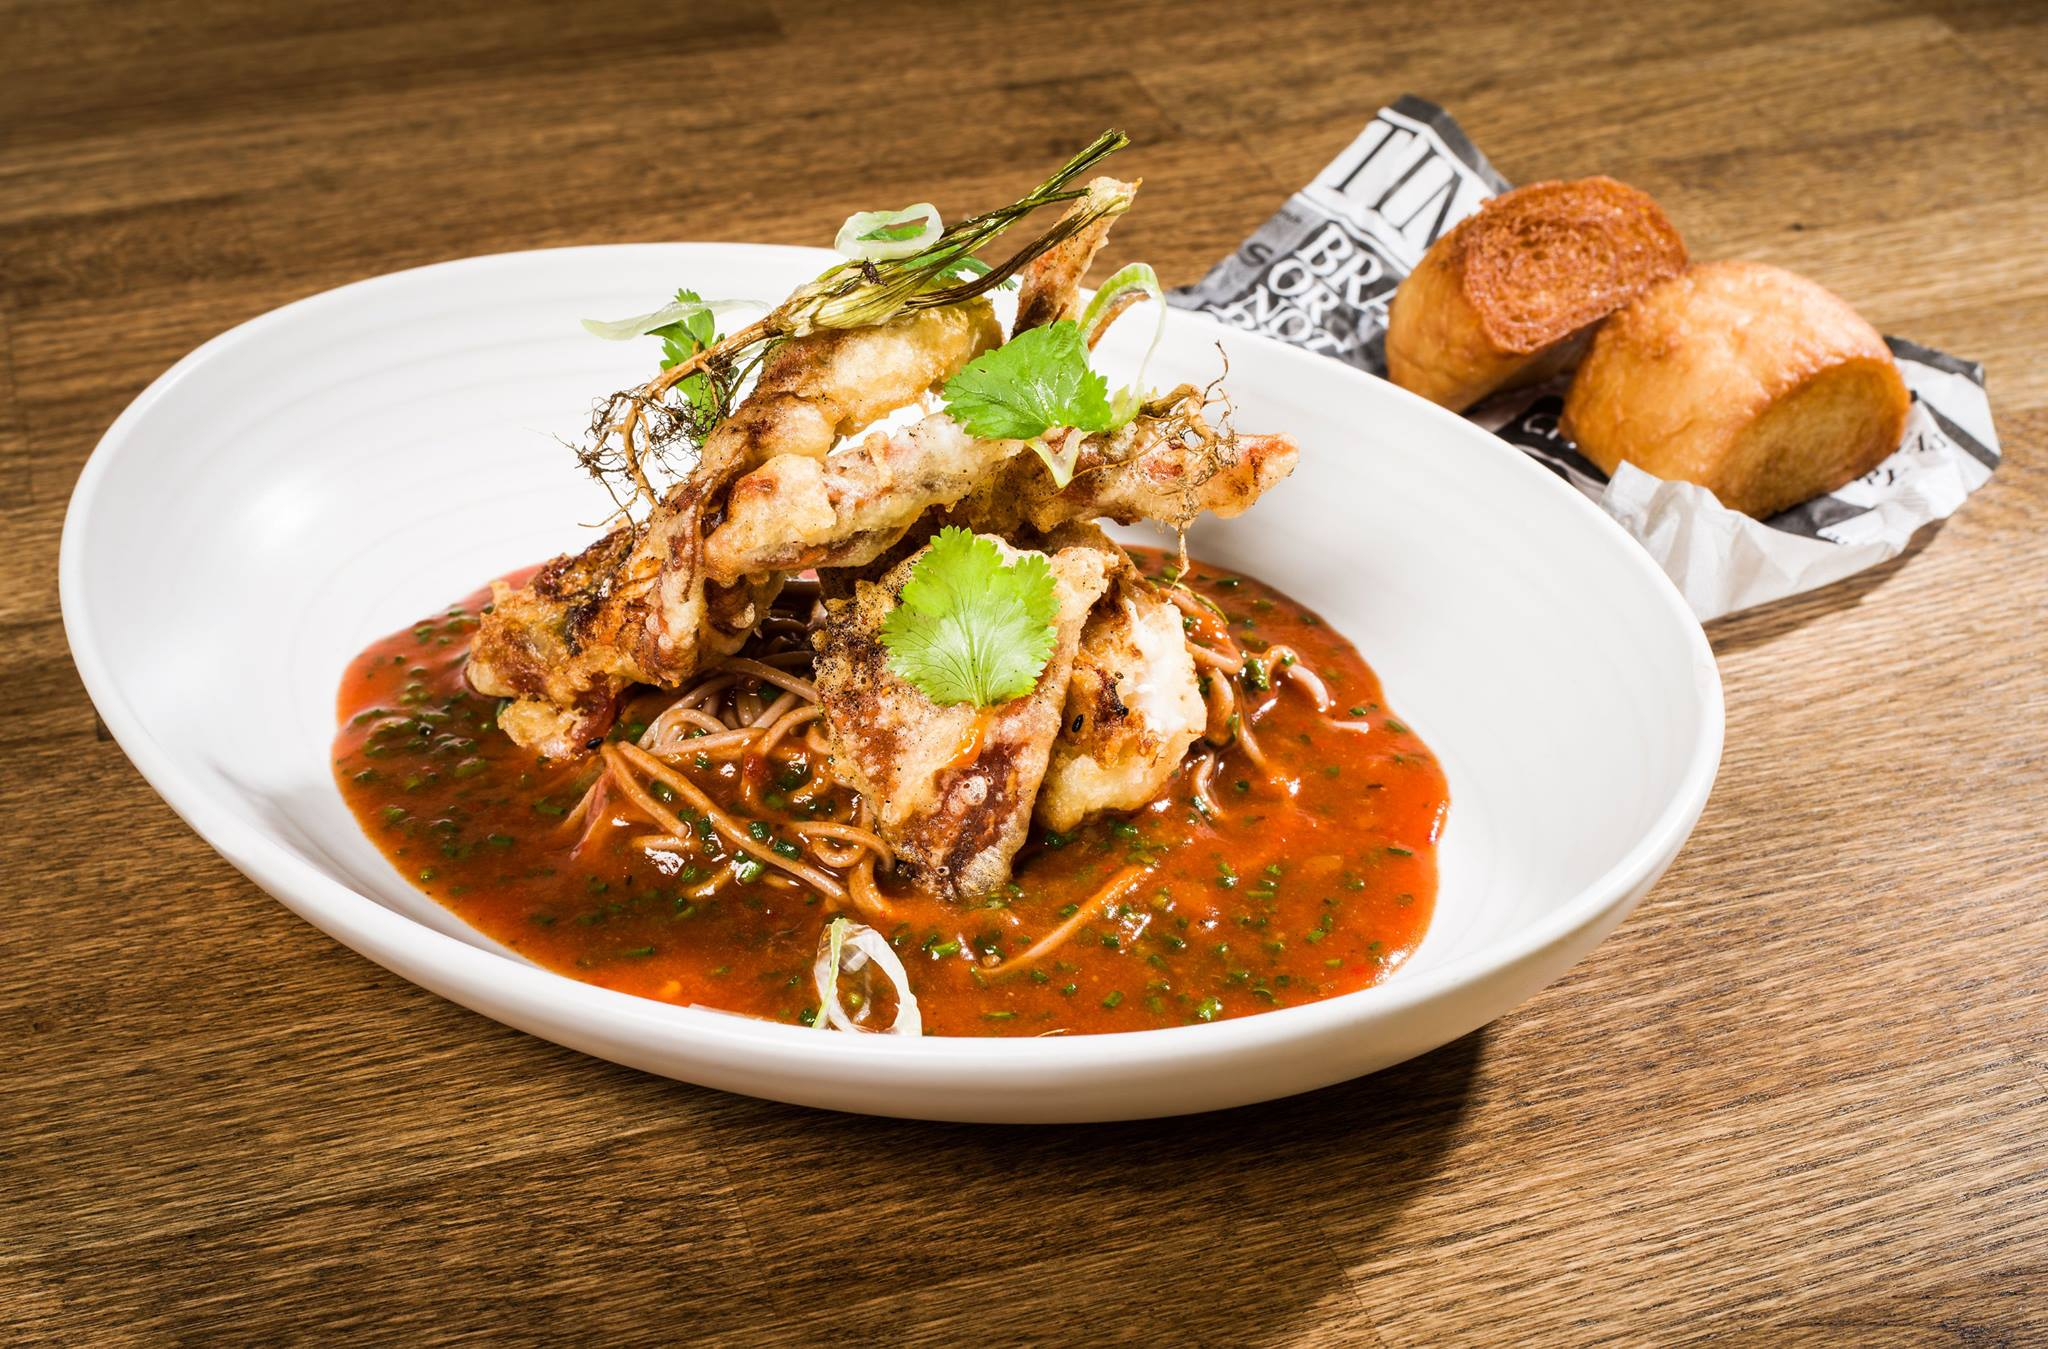 Latasia chili crab